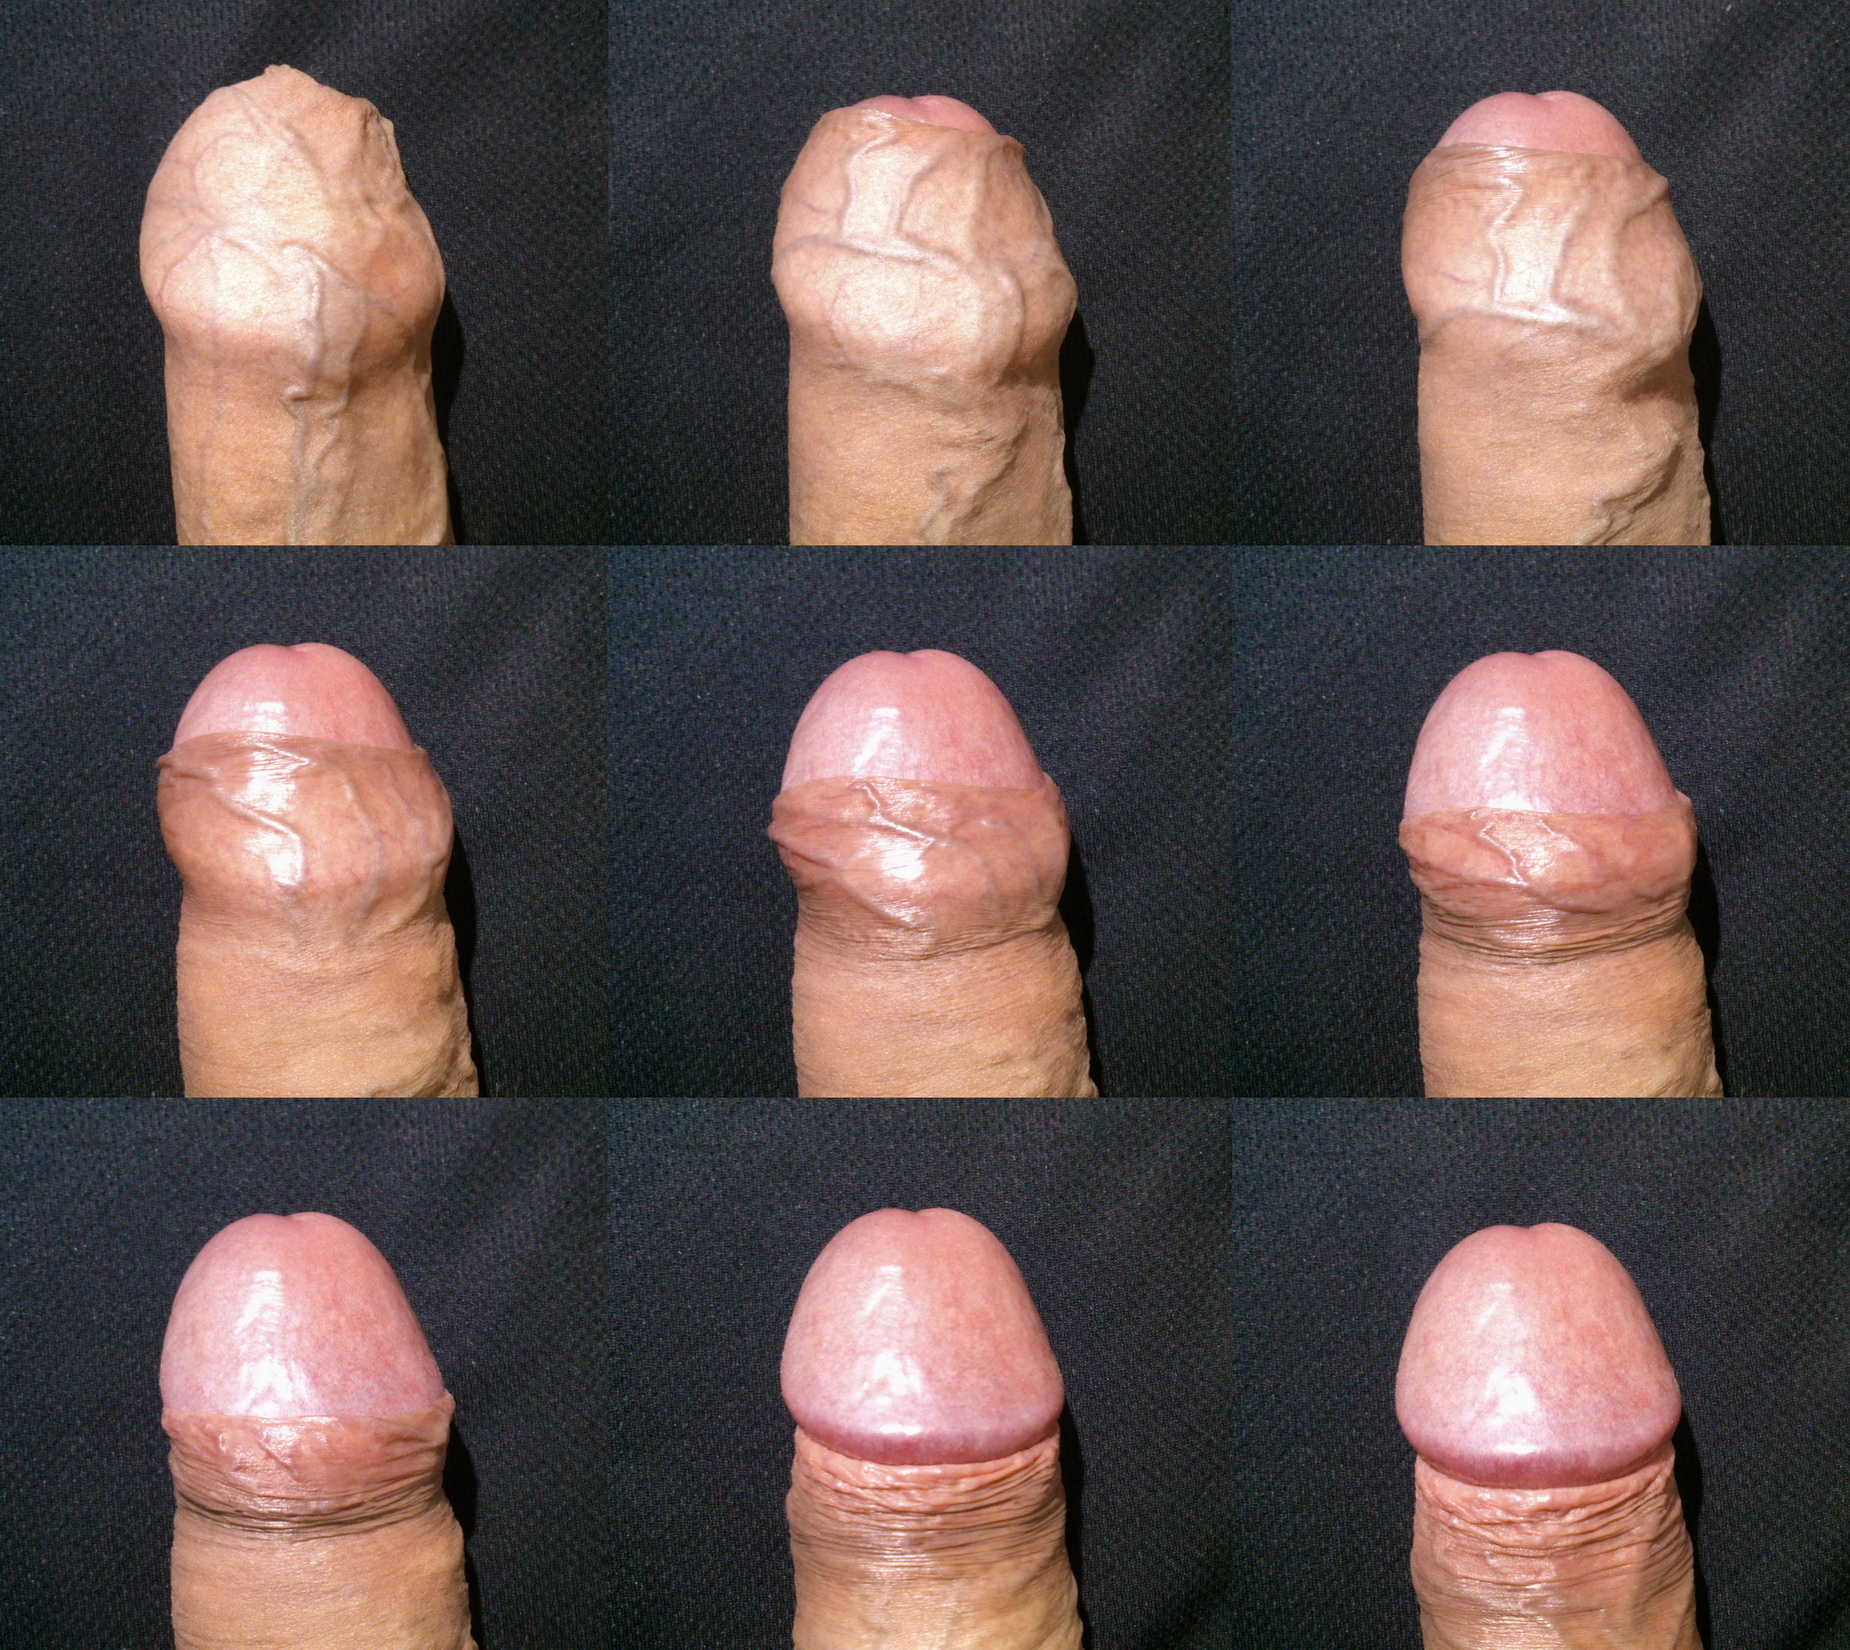 Masturbation forskin pulled back